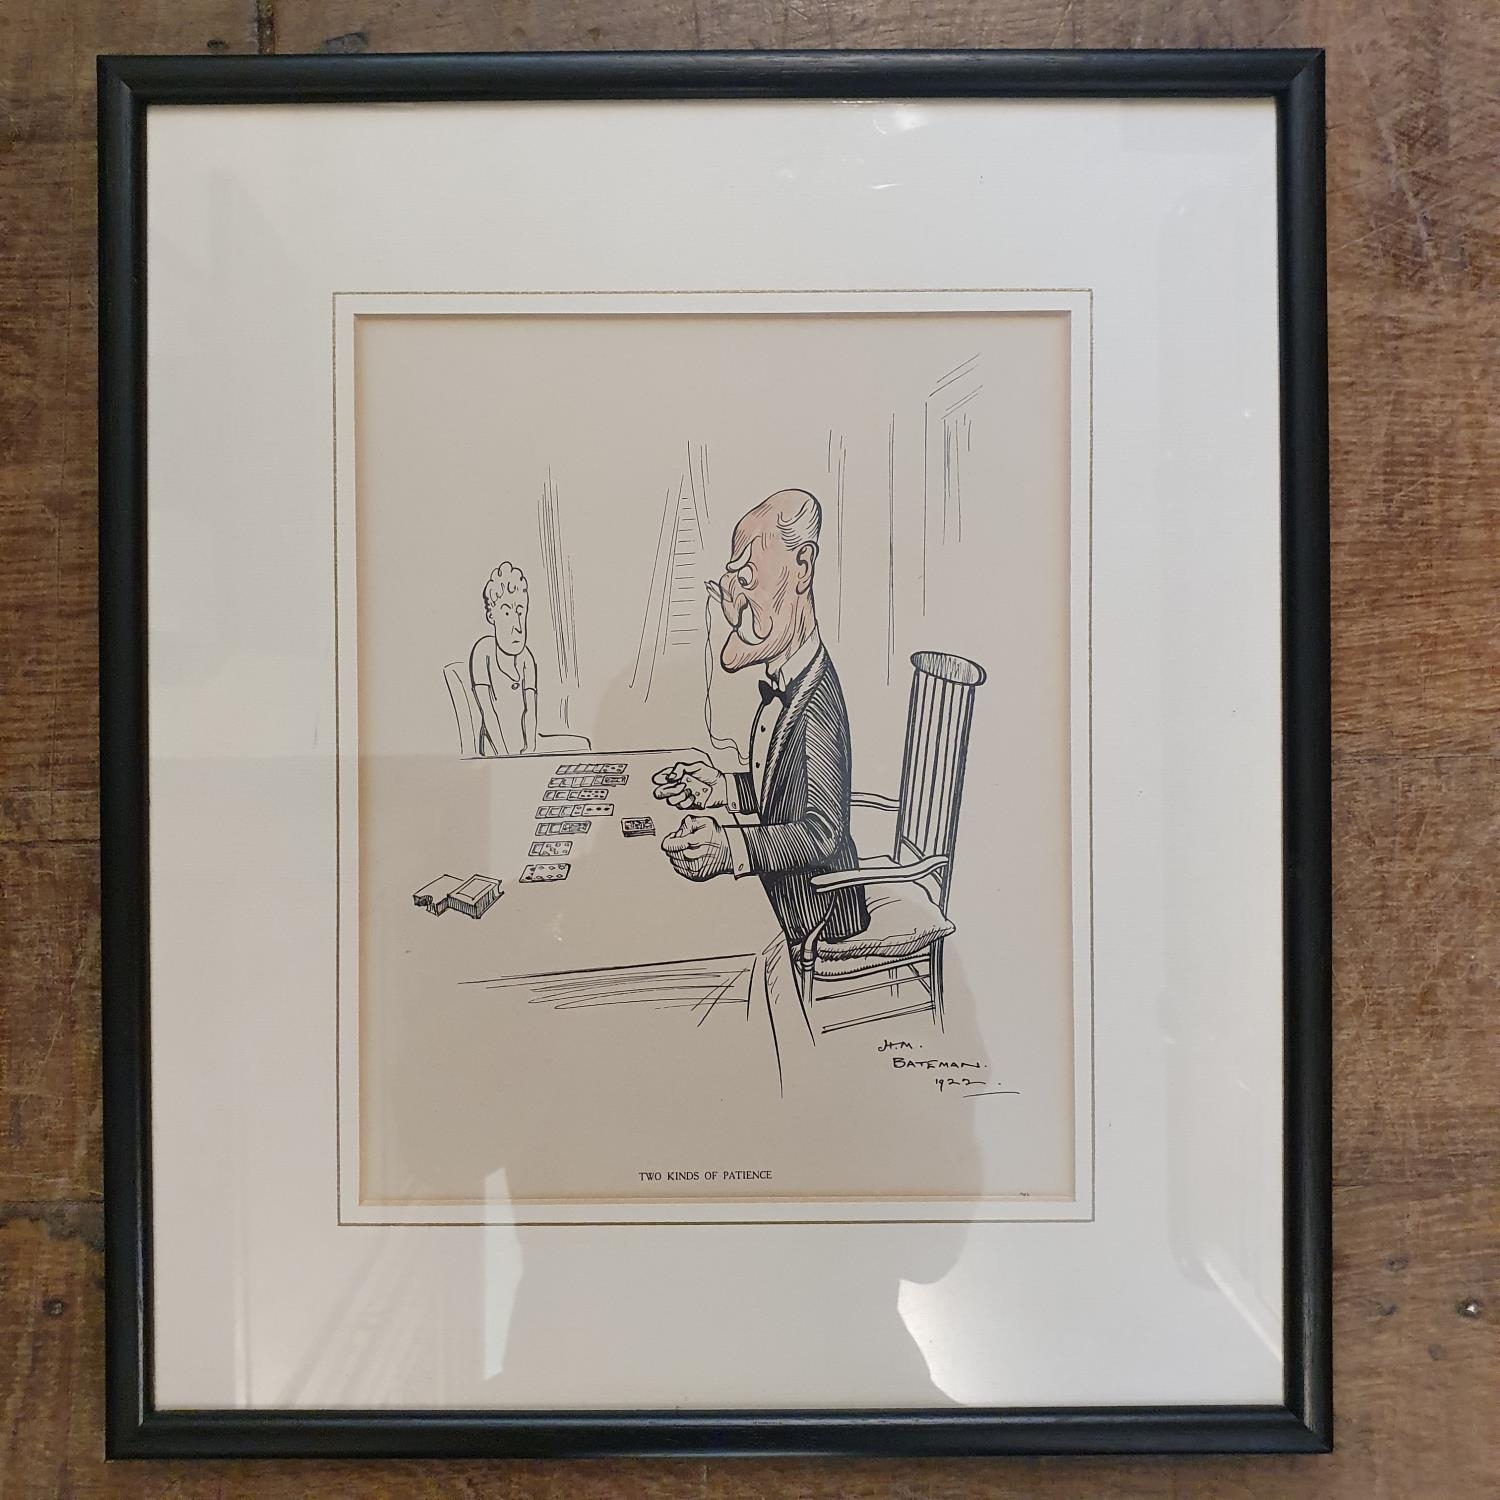 H M Bateman, a cartoon of a man playing cards, print, 25 x 20 cm and various prints and pictures (